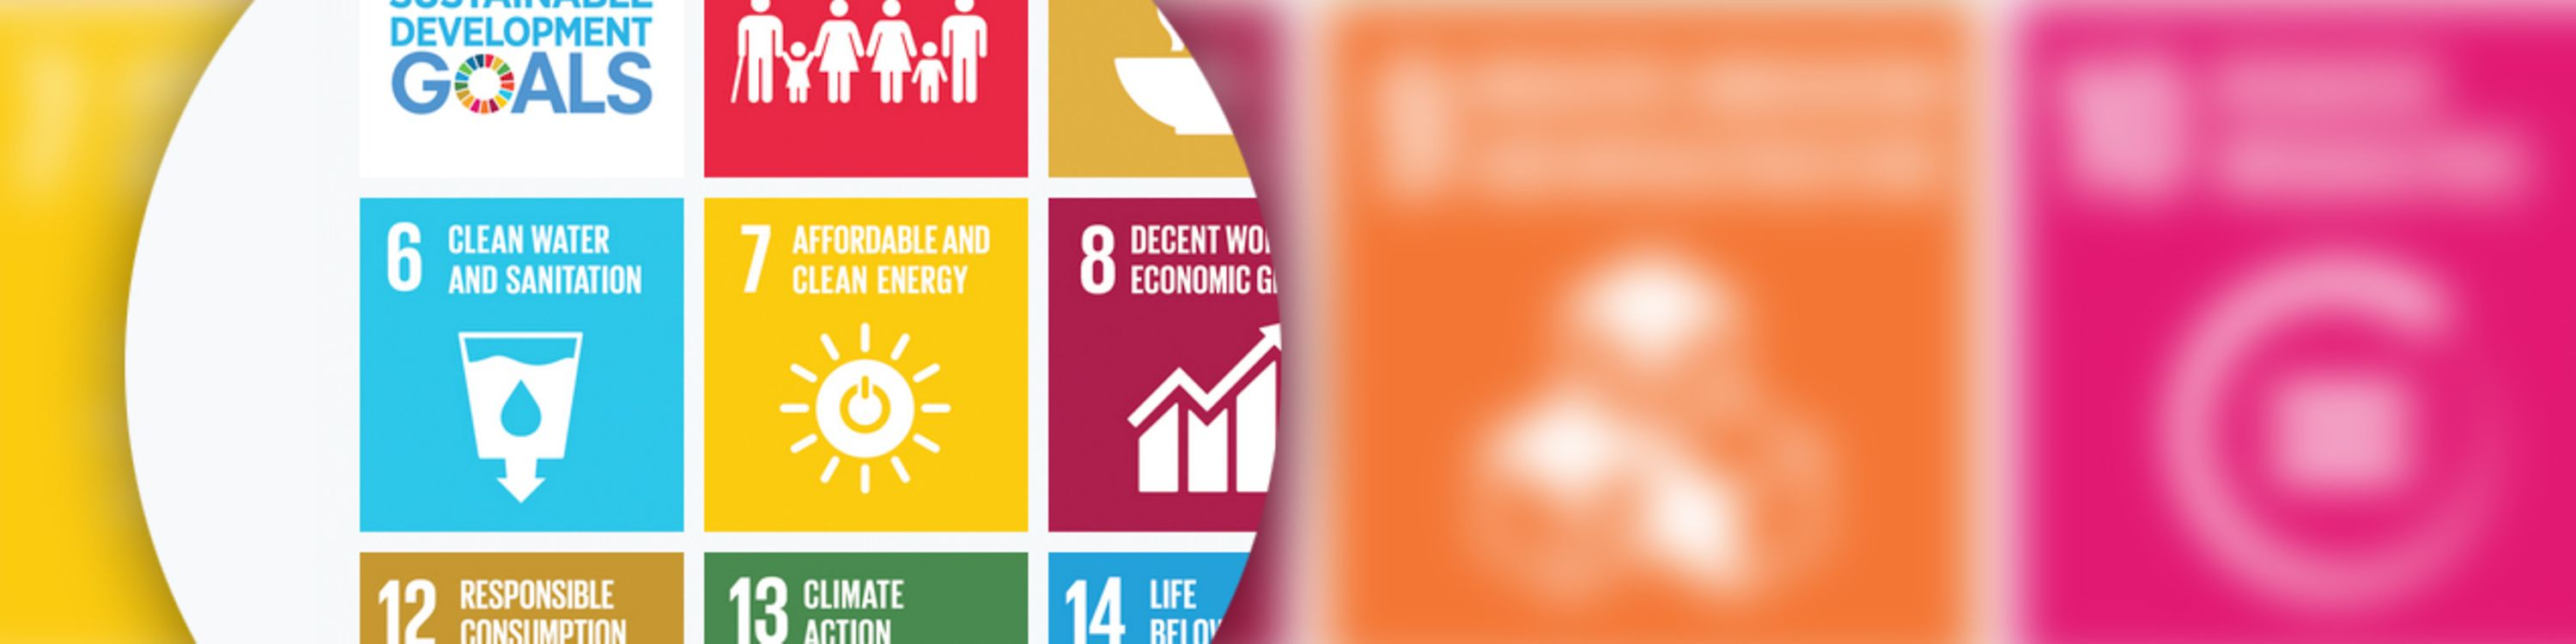 Master thesis on sustainable development